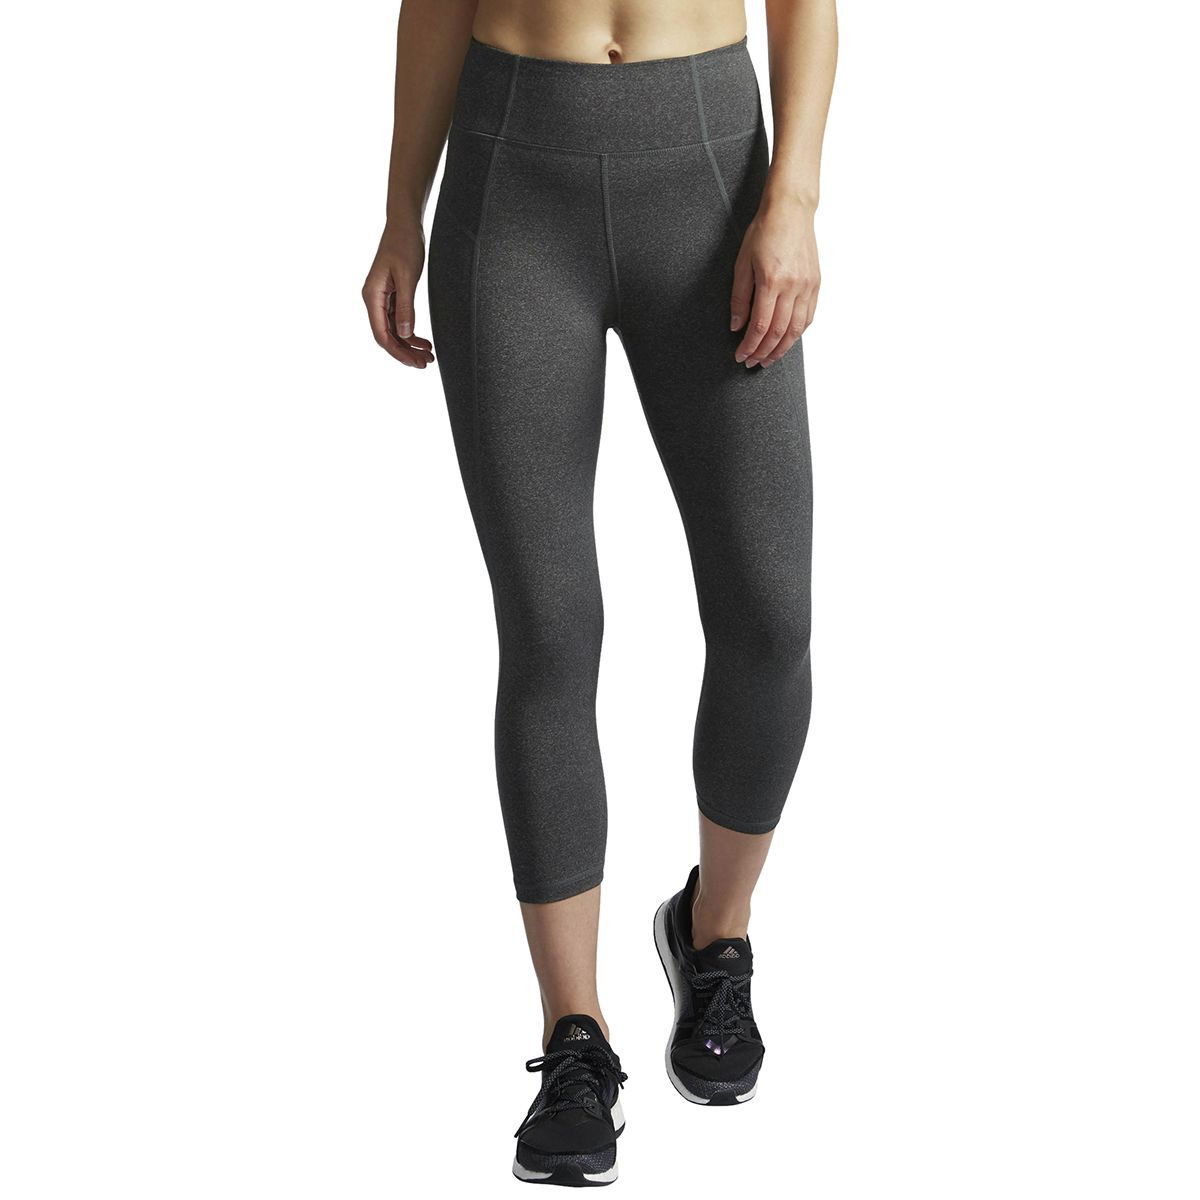 Adidas Outdoor High Rise 3/4 Tights - Women's